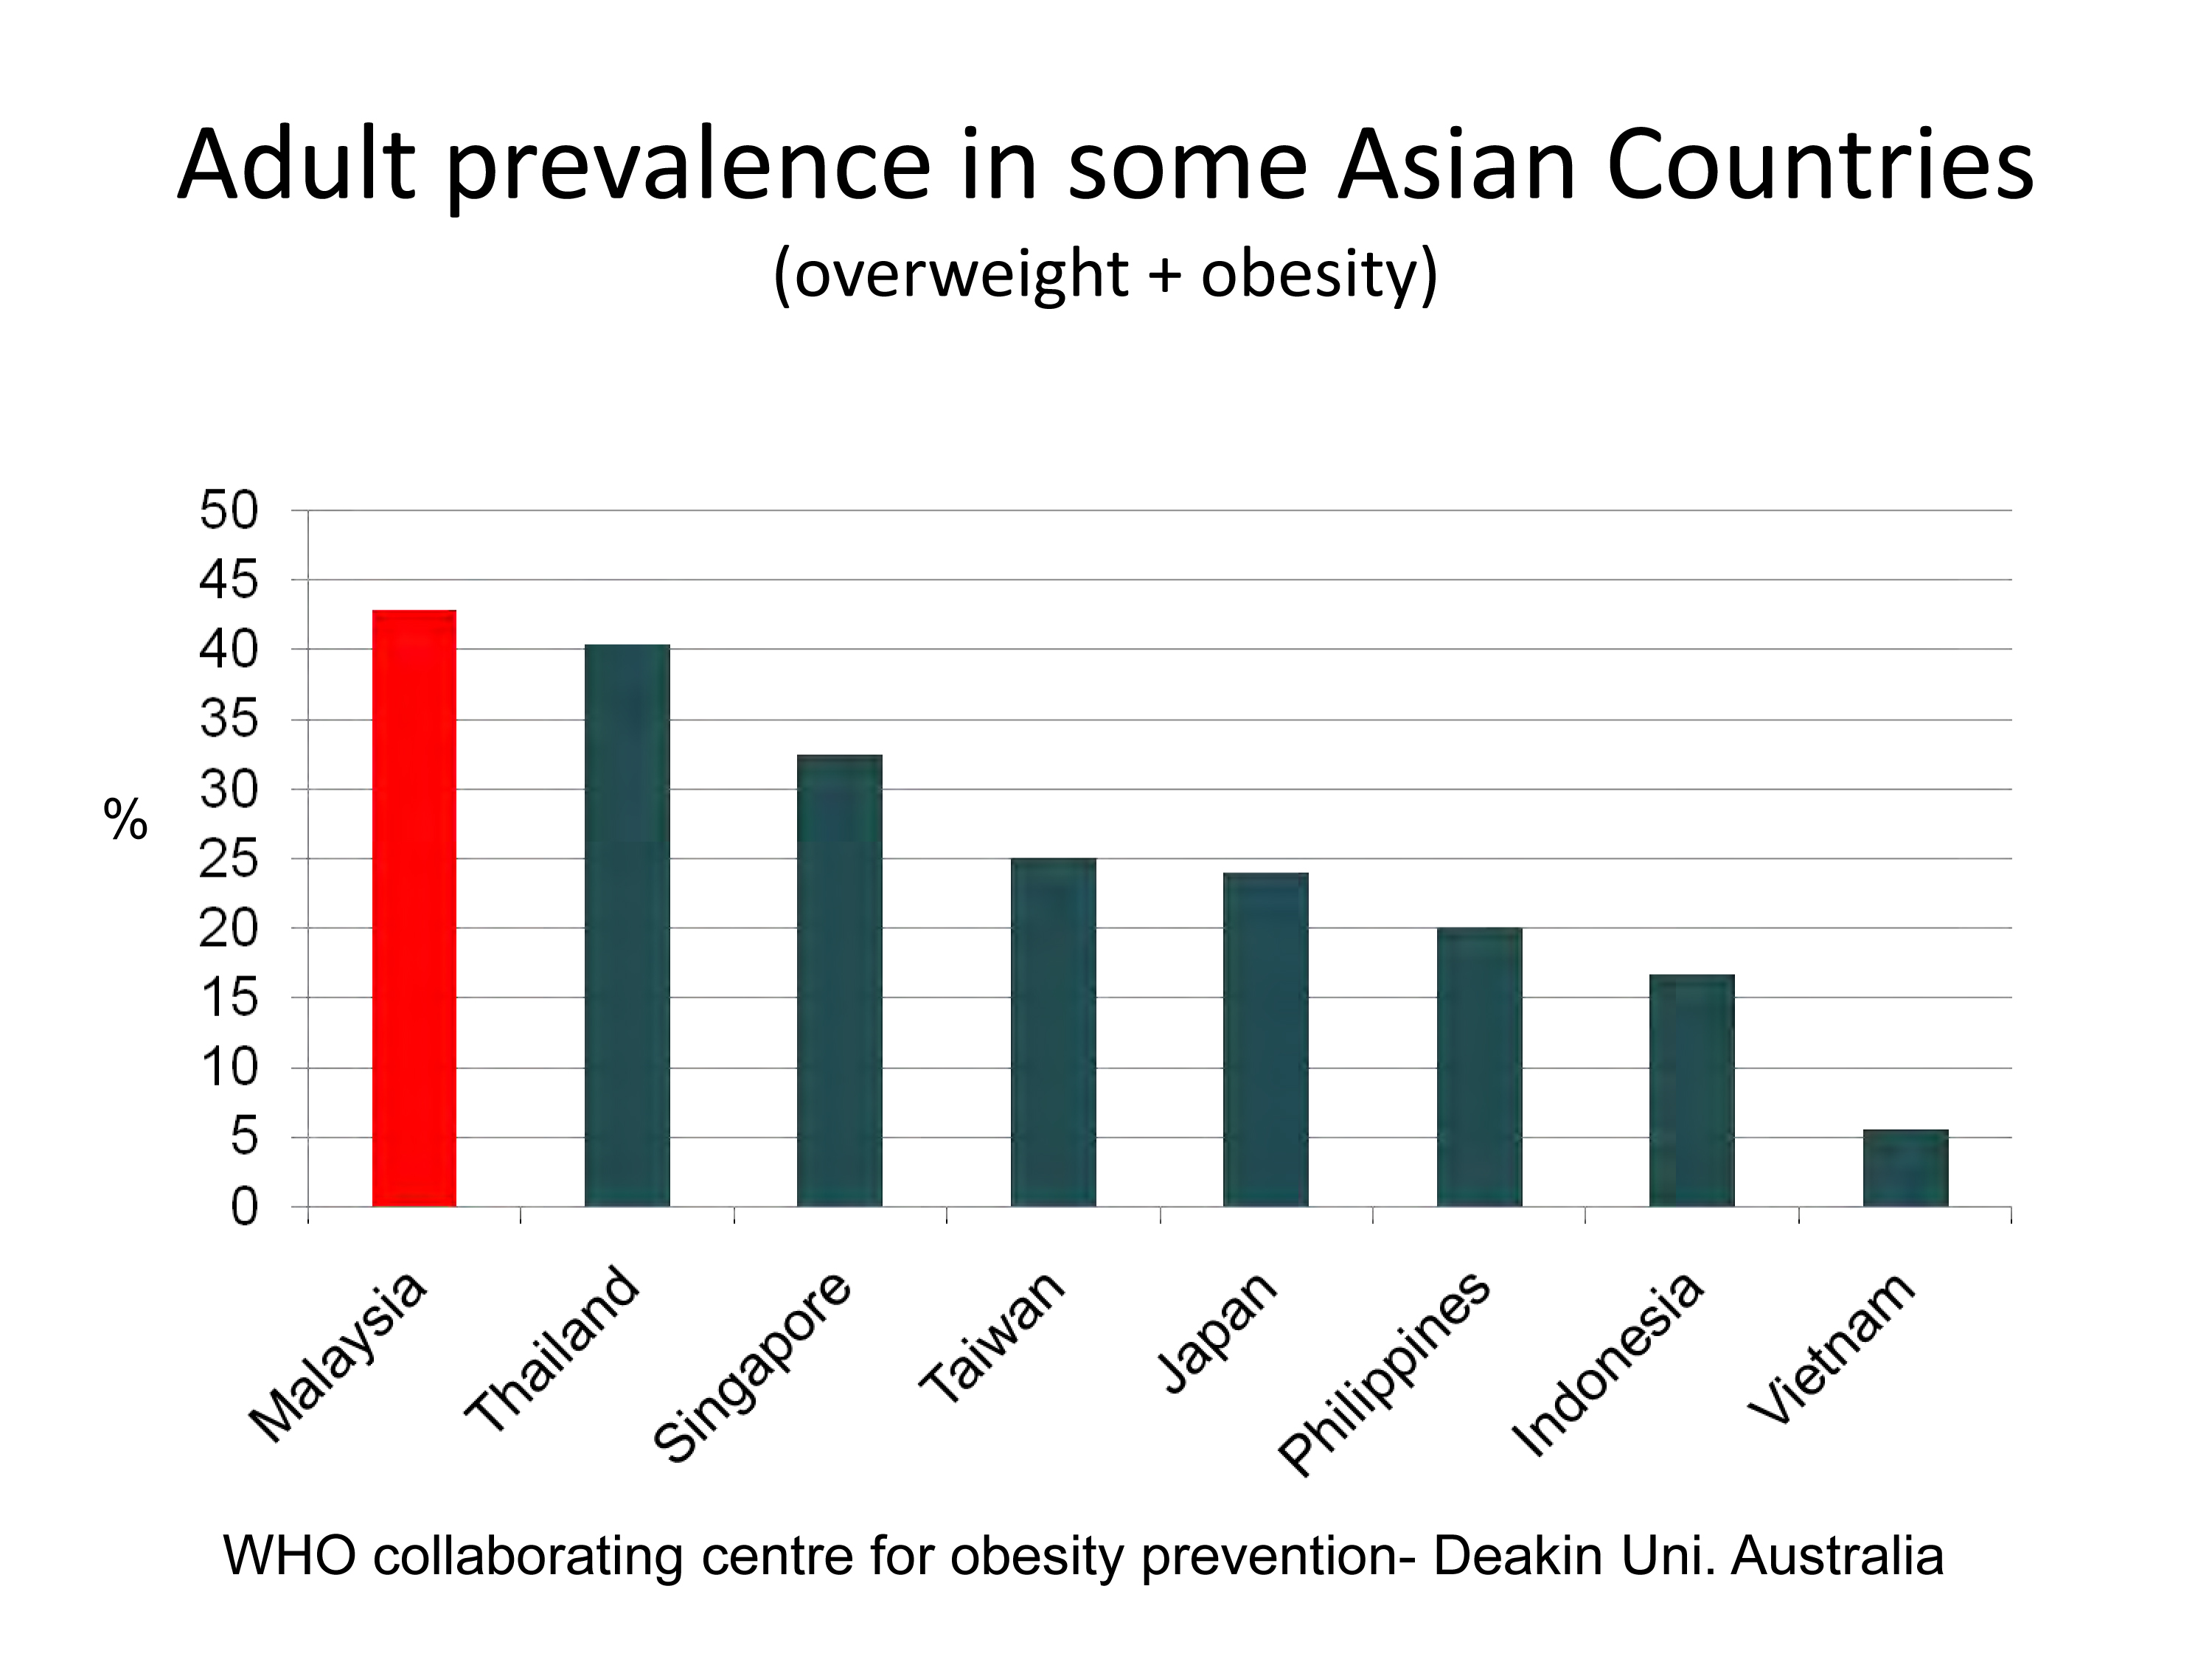 Asian obesity rates